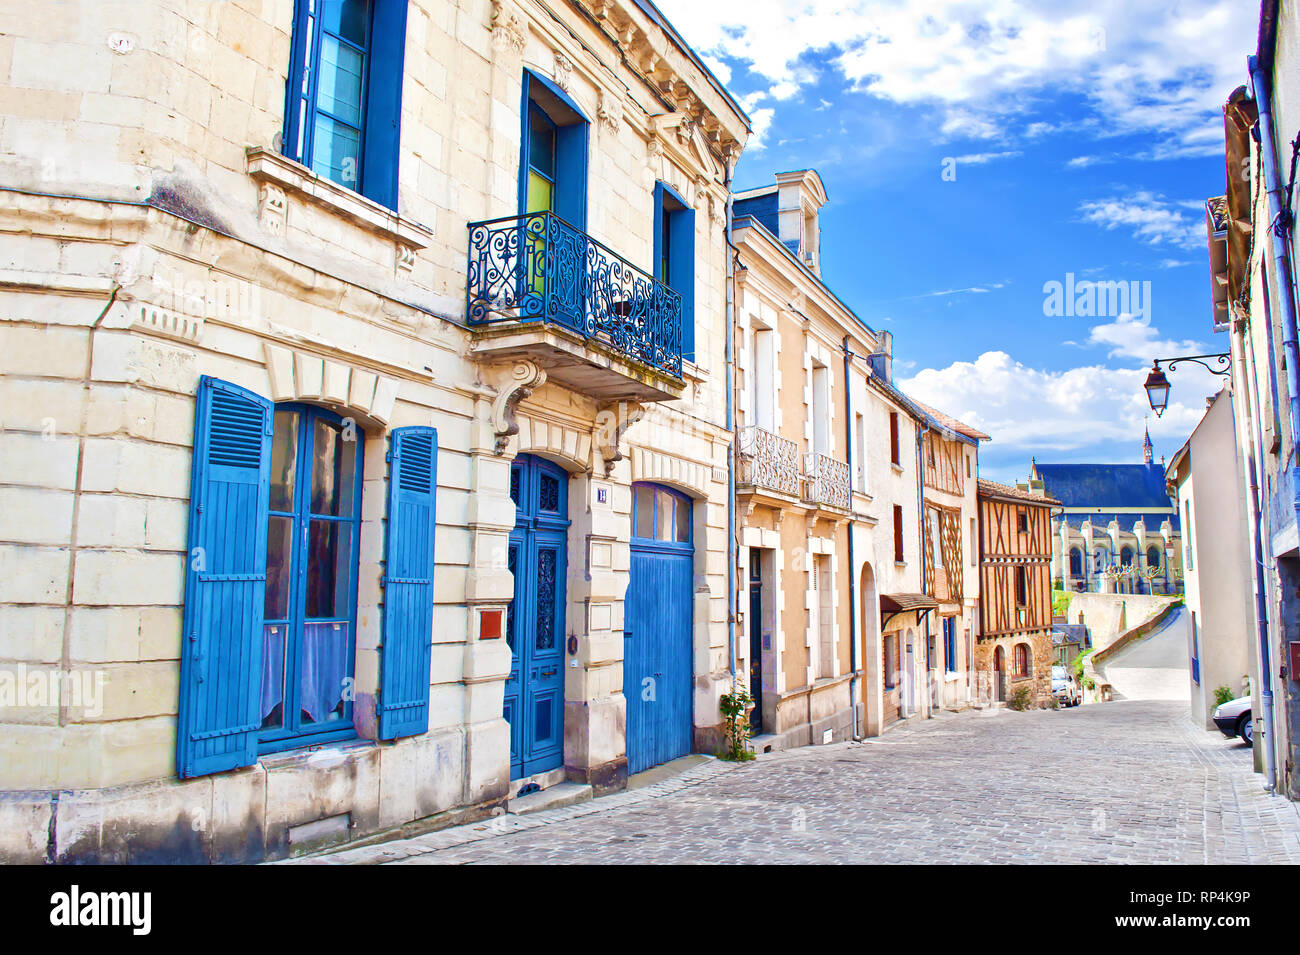 Solitary Rue De Chateau Street In Small Town Thouars France